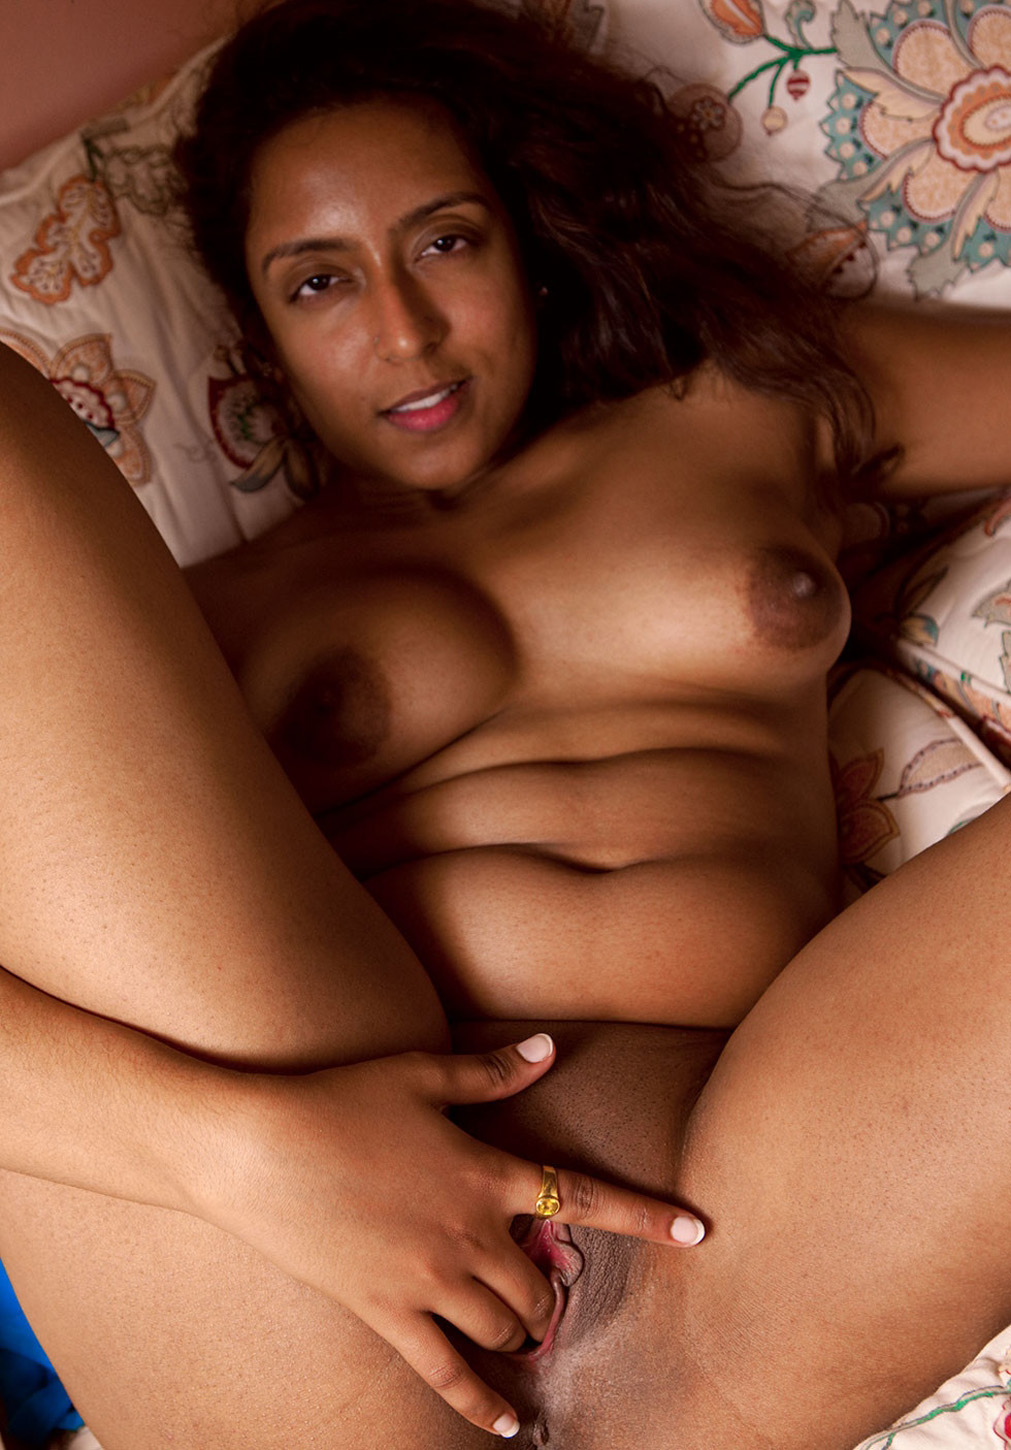 pakistani porn pics galleries